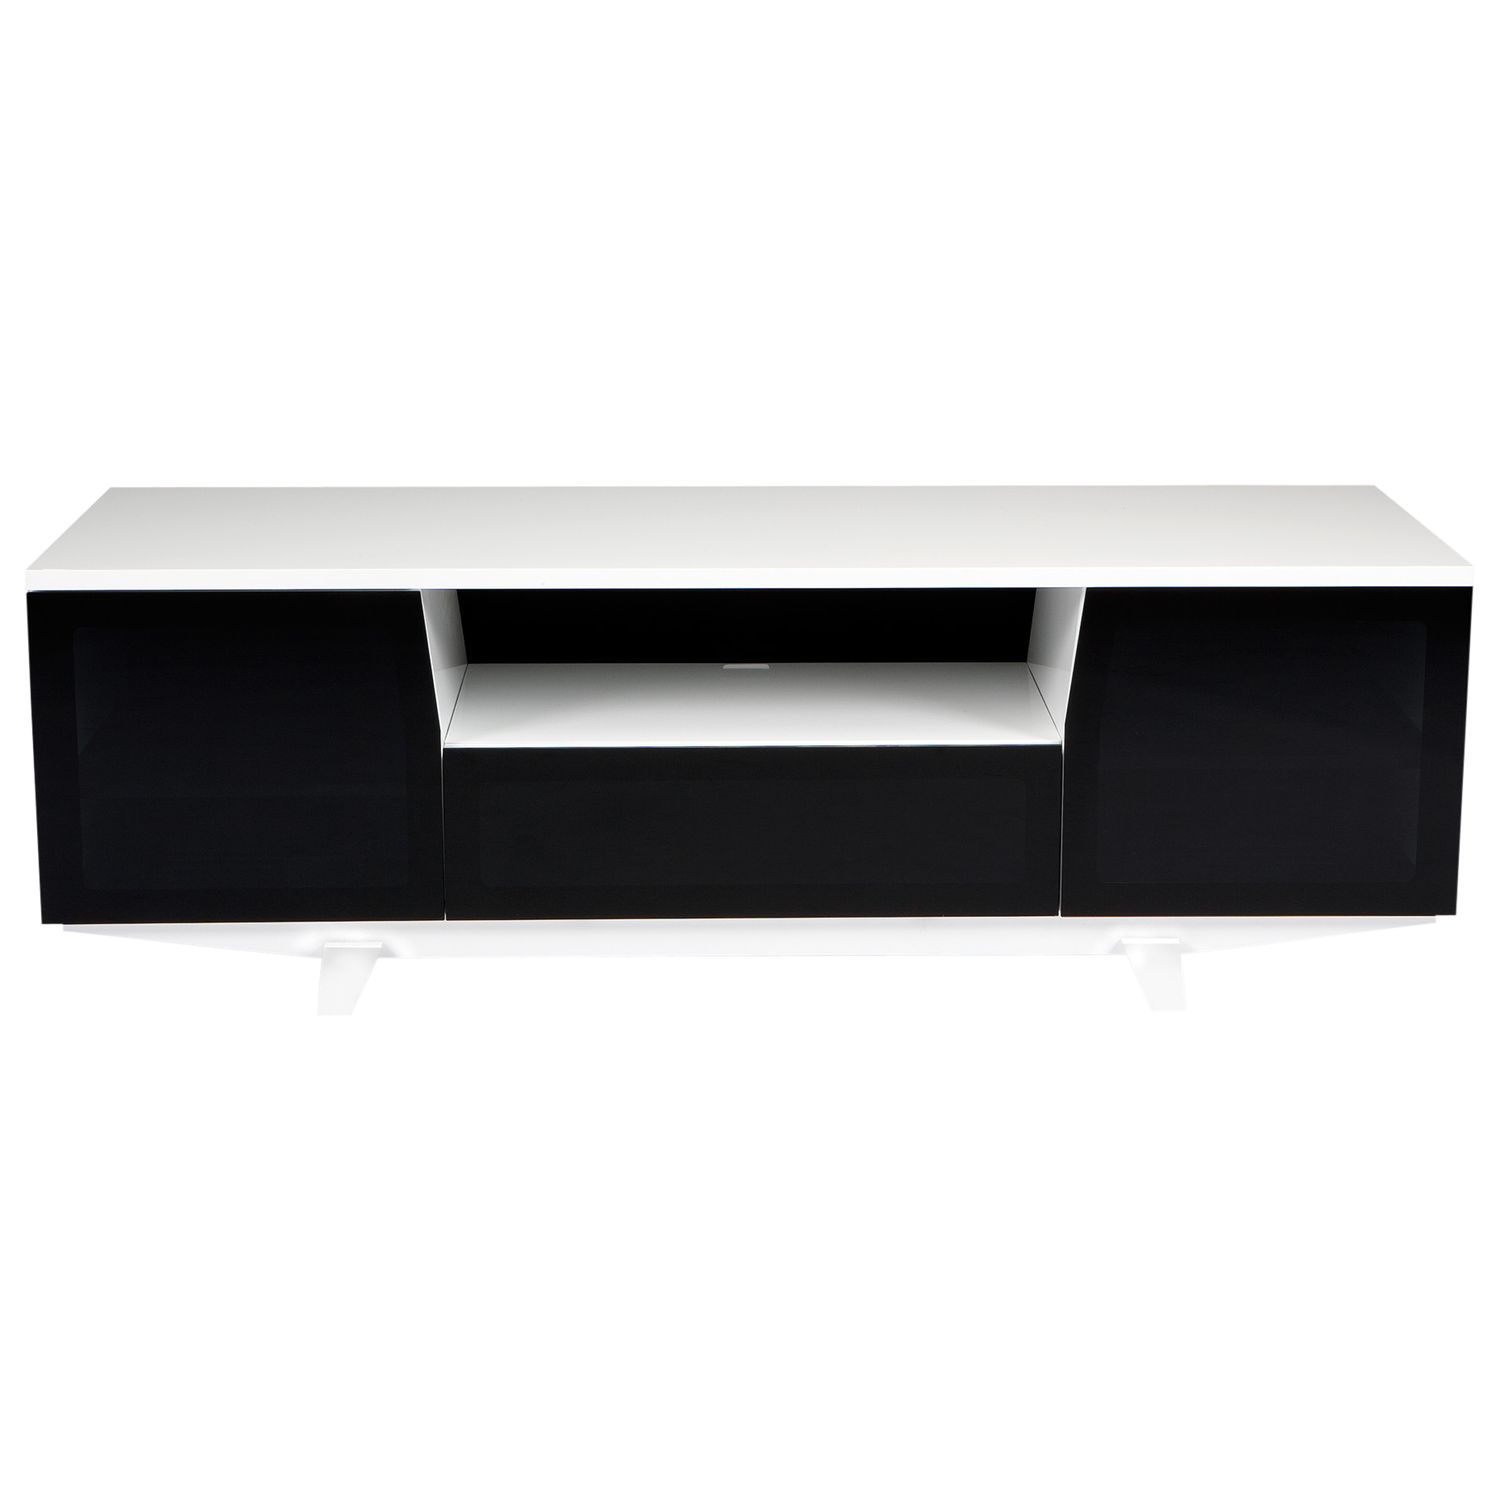 BDI BDI Marina 8729-2/GW TV Stand for TVs up to 82, White